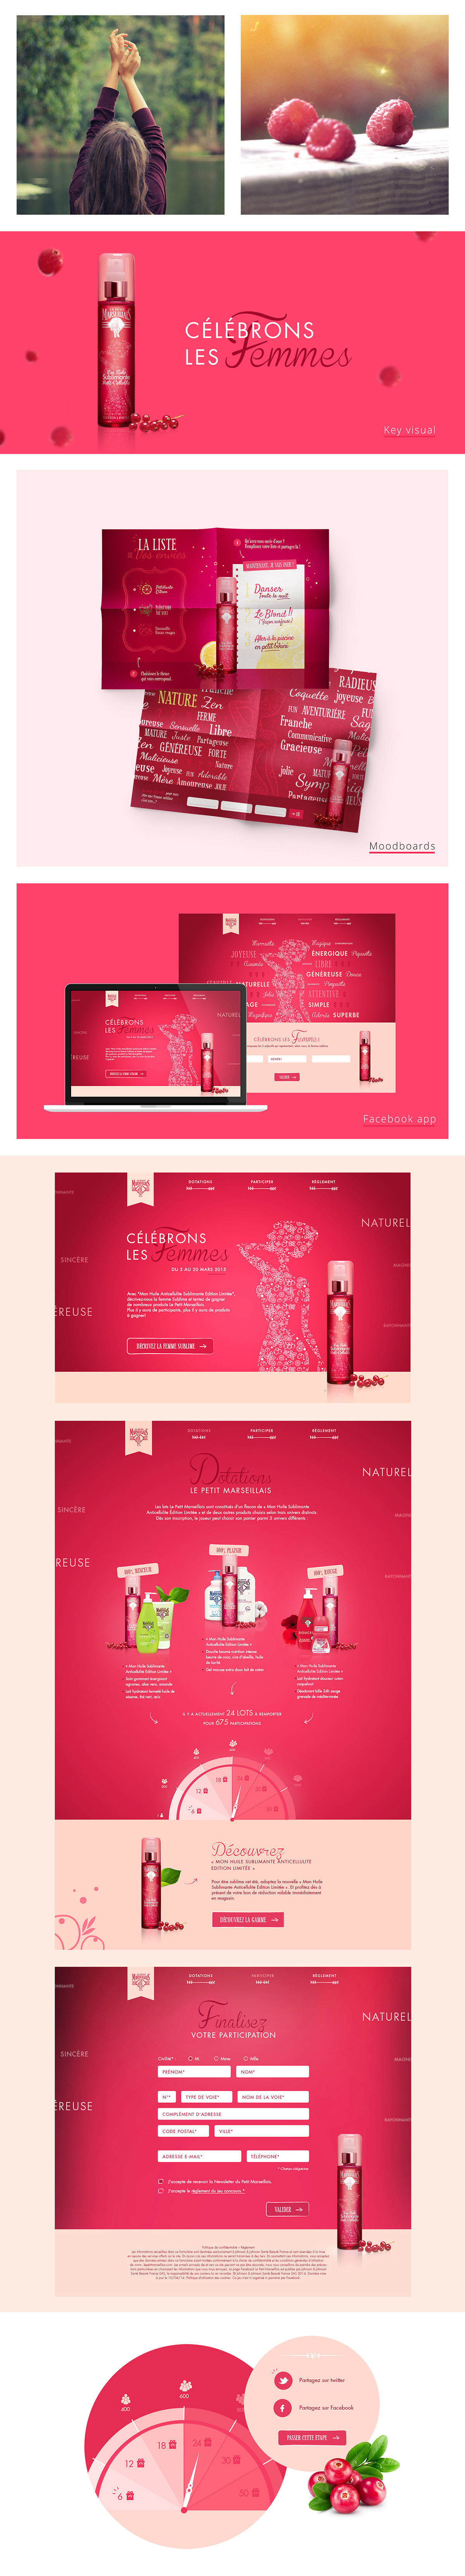 spring women femme sublime beauty petit marseillais cosmétiques pink rose Fruit girl girly game